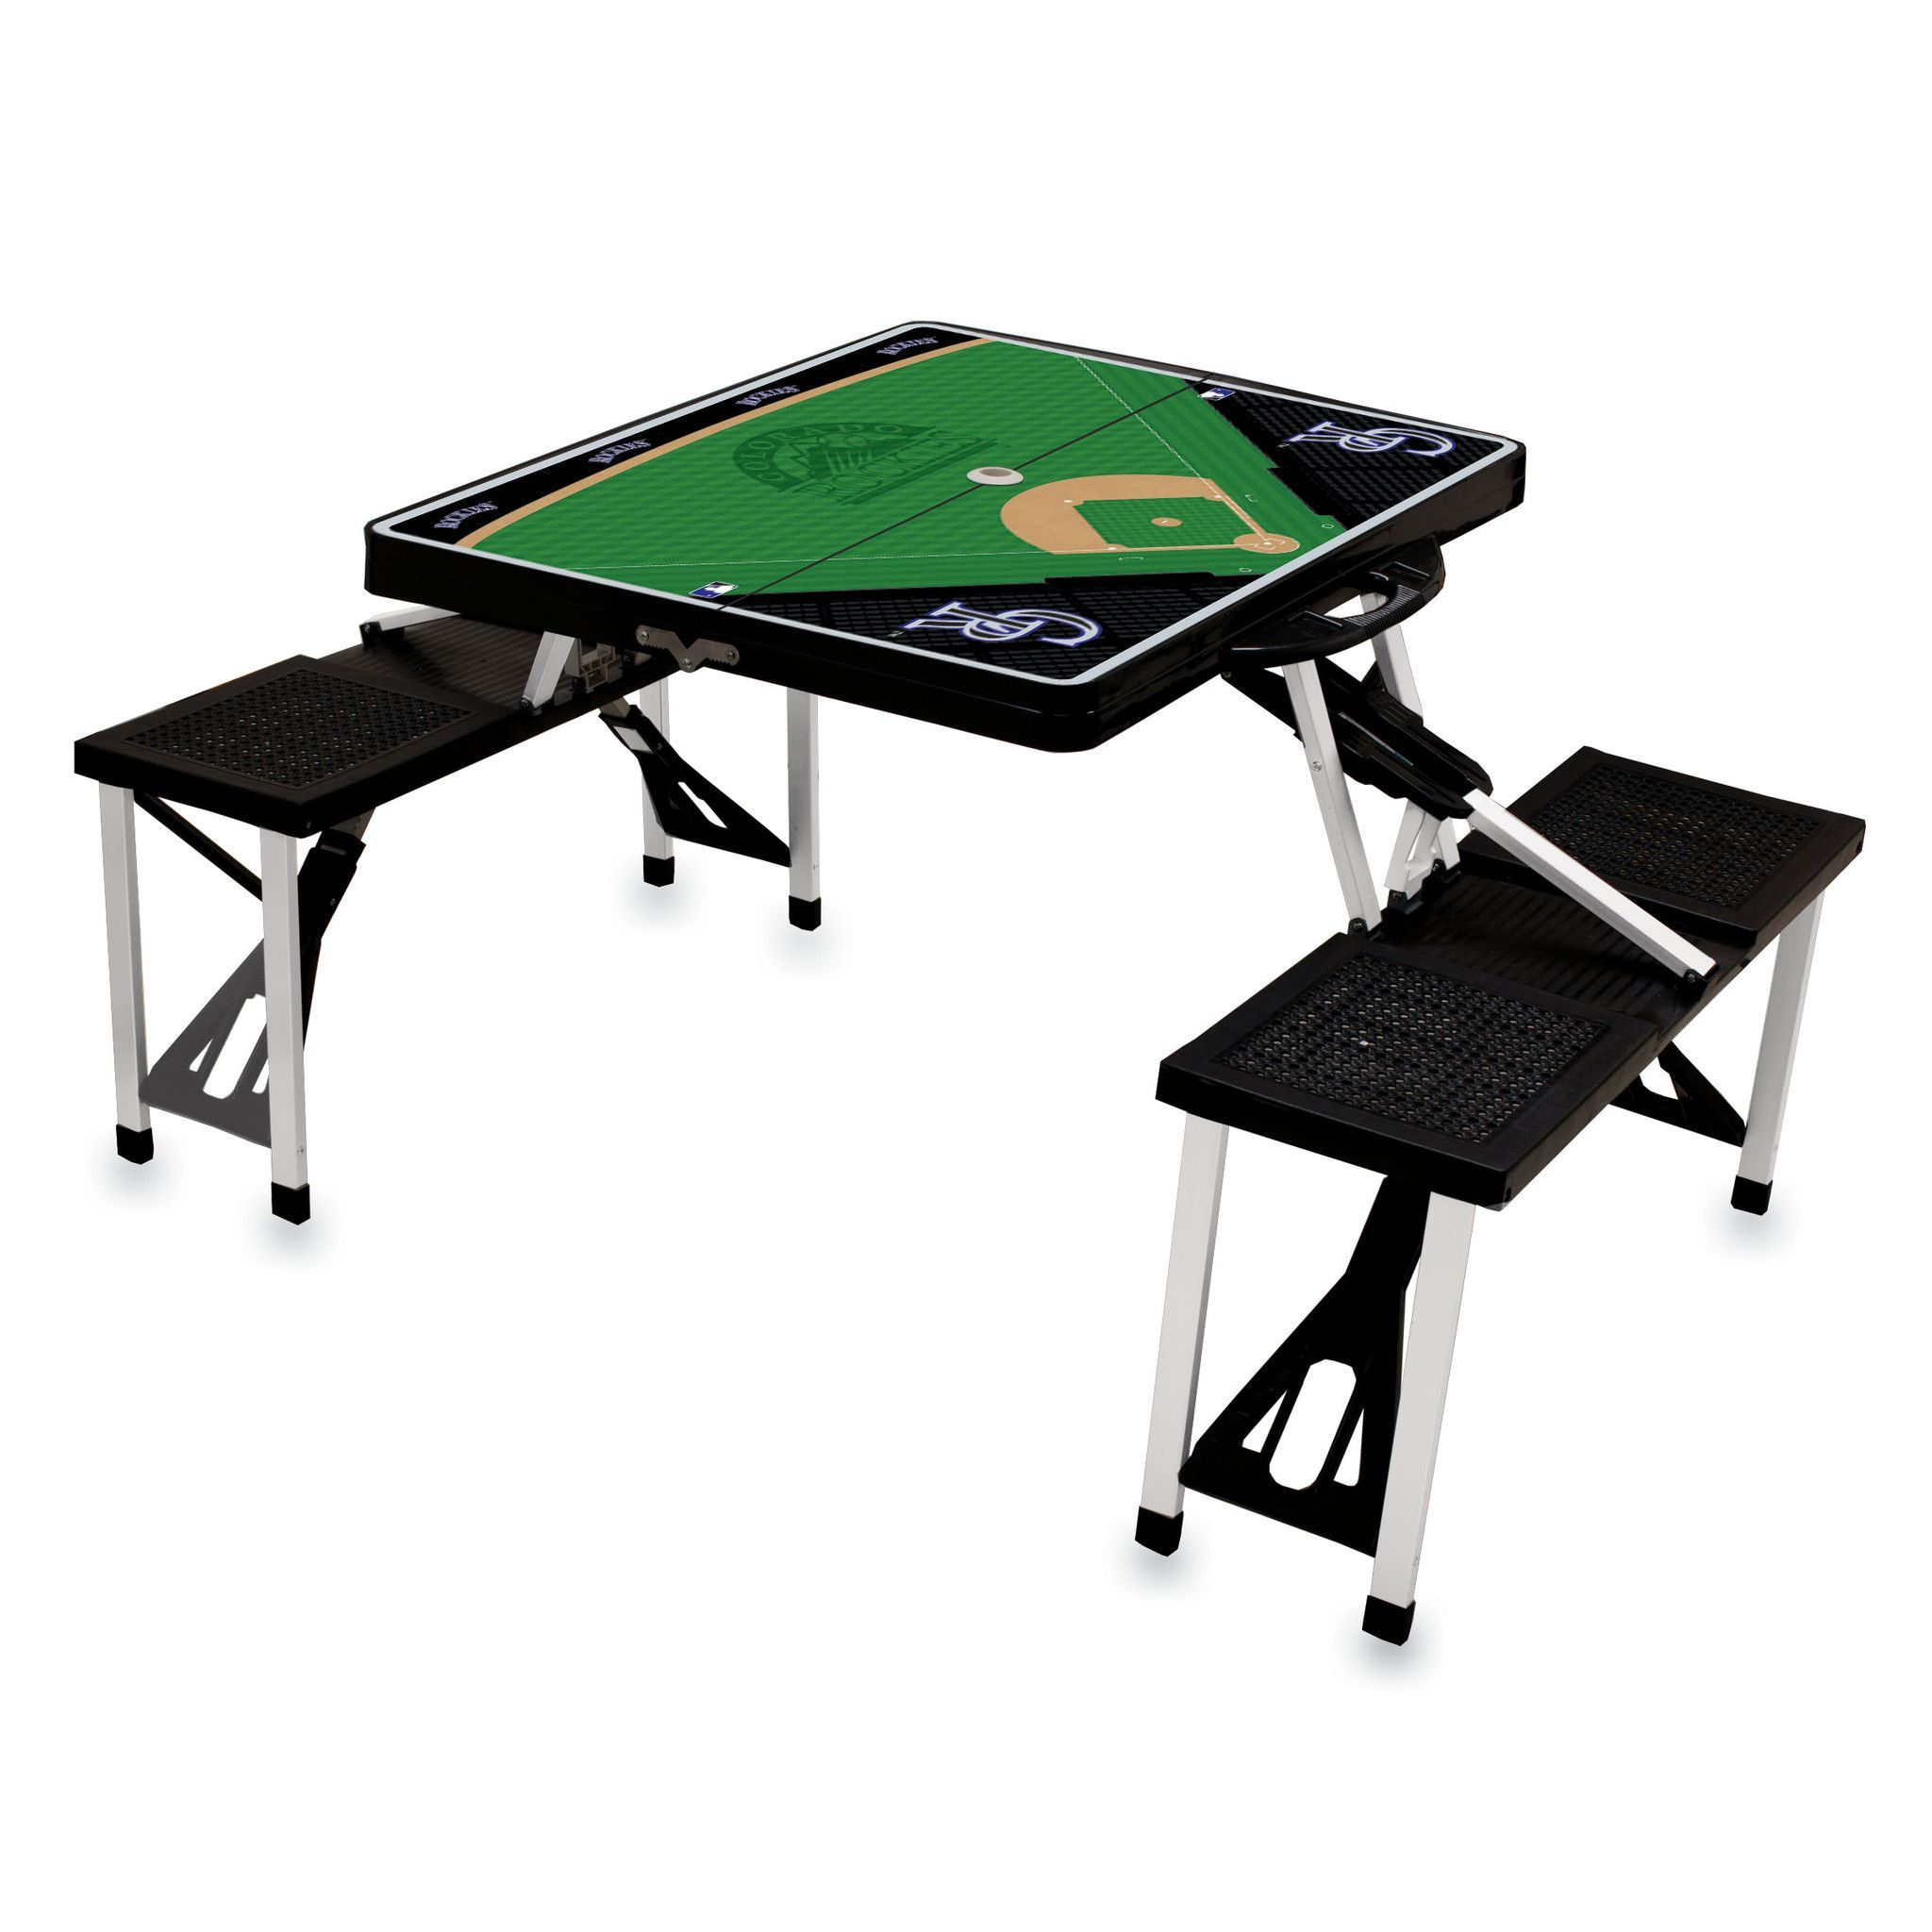 Colorado rockies portable picnic table with folding bench seats and colorado rockies portable picnic table with folding bench seats and baseball field graphics on the table watchthetrailerfo